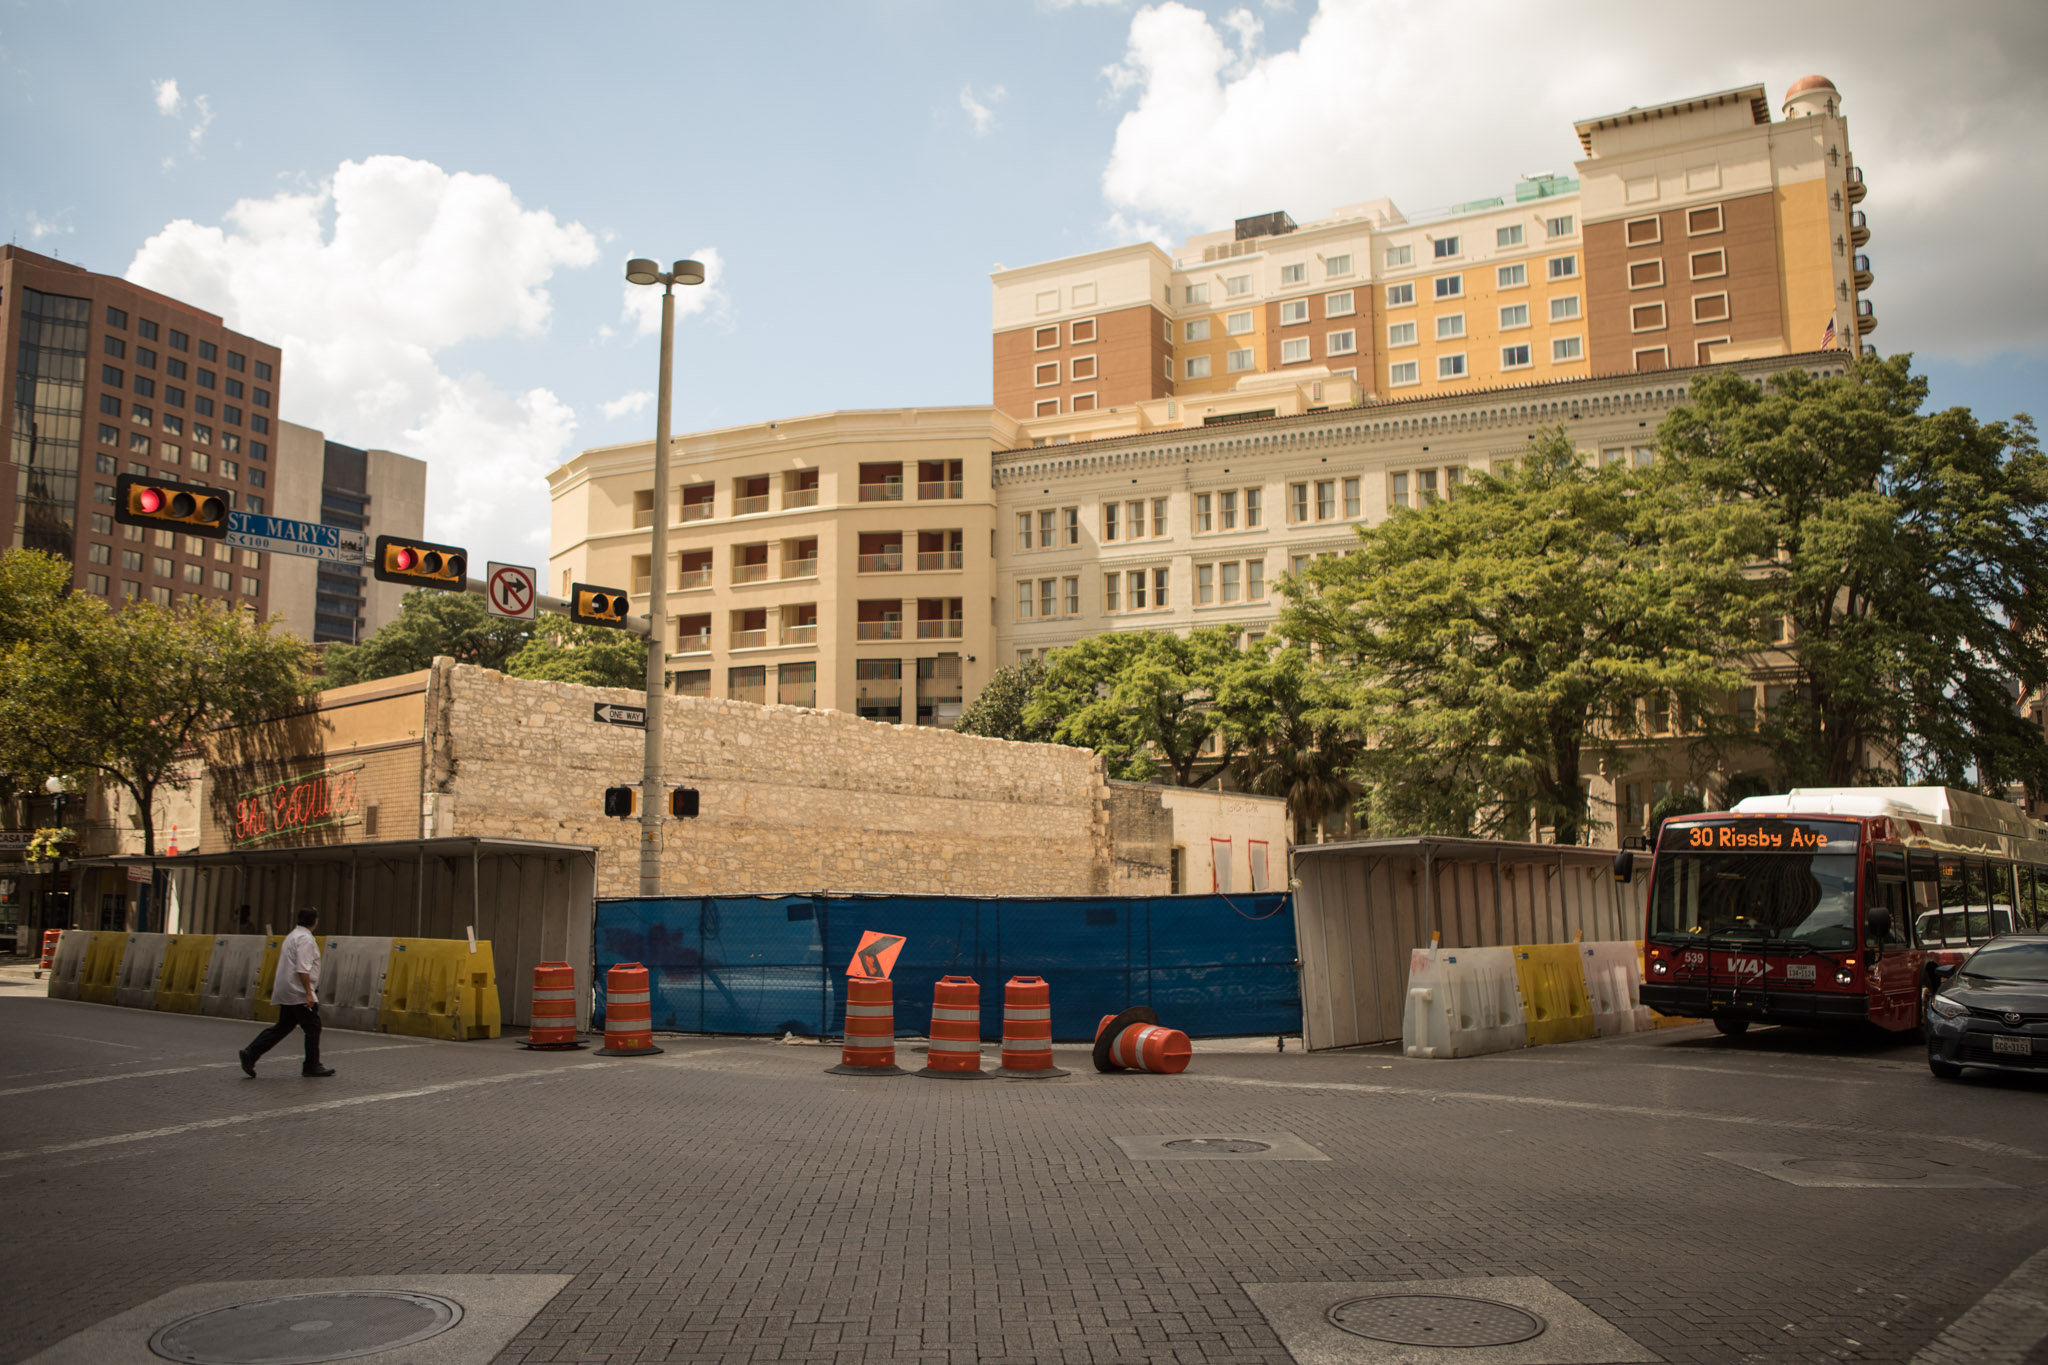 Hilton Canopy Hotel is under construction.